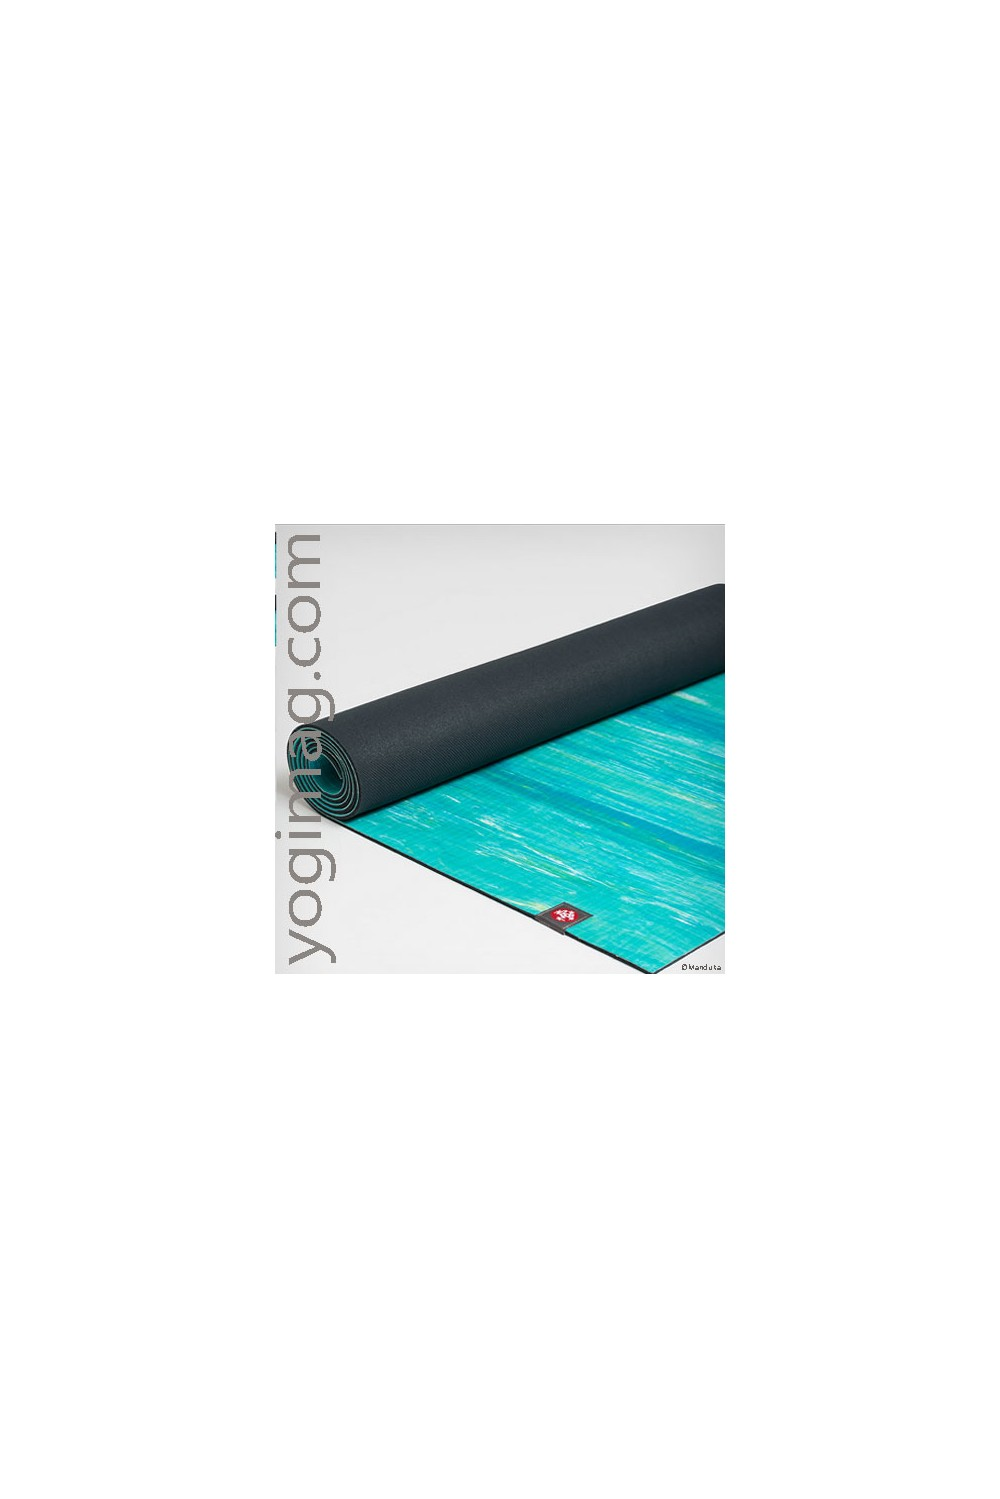 tapis de yoga en caoutchouc  u00e9cologique naturel eco  u00e0 la mode manduka